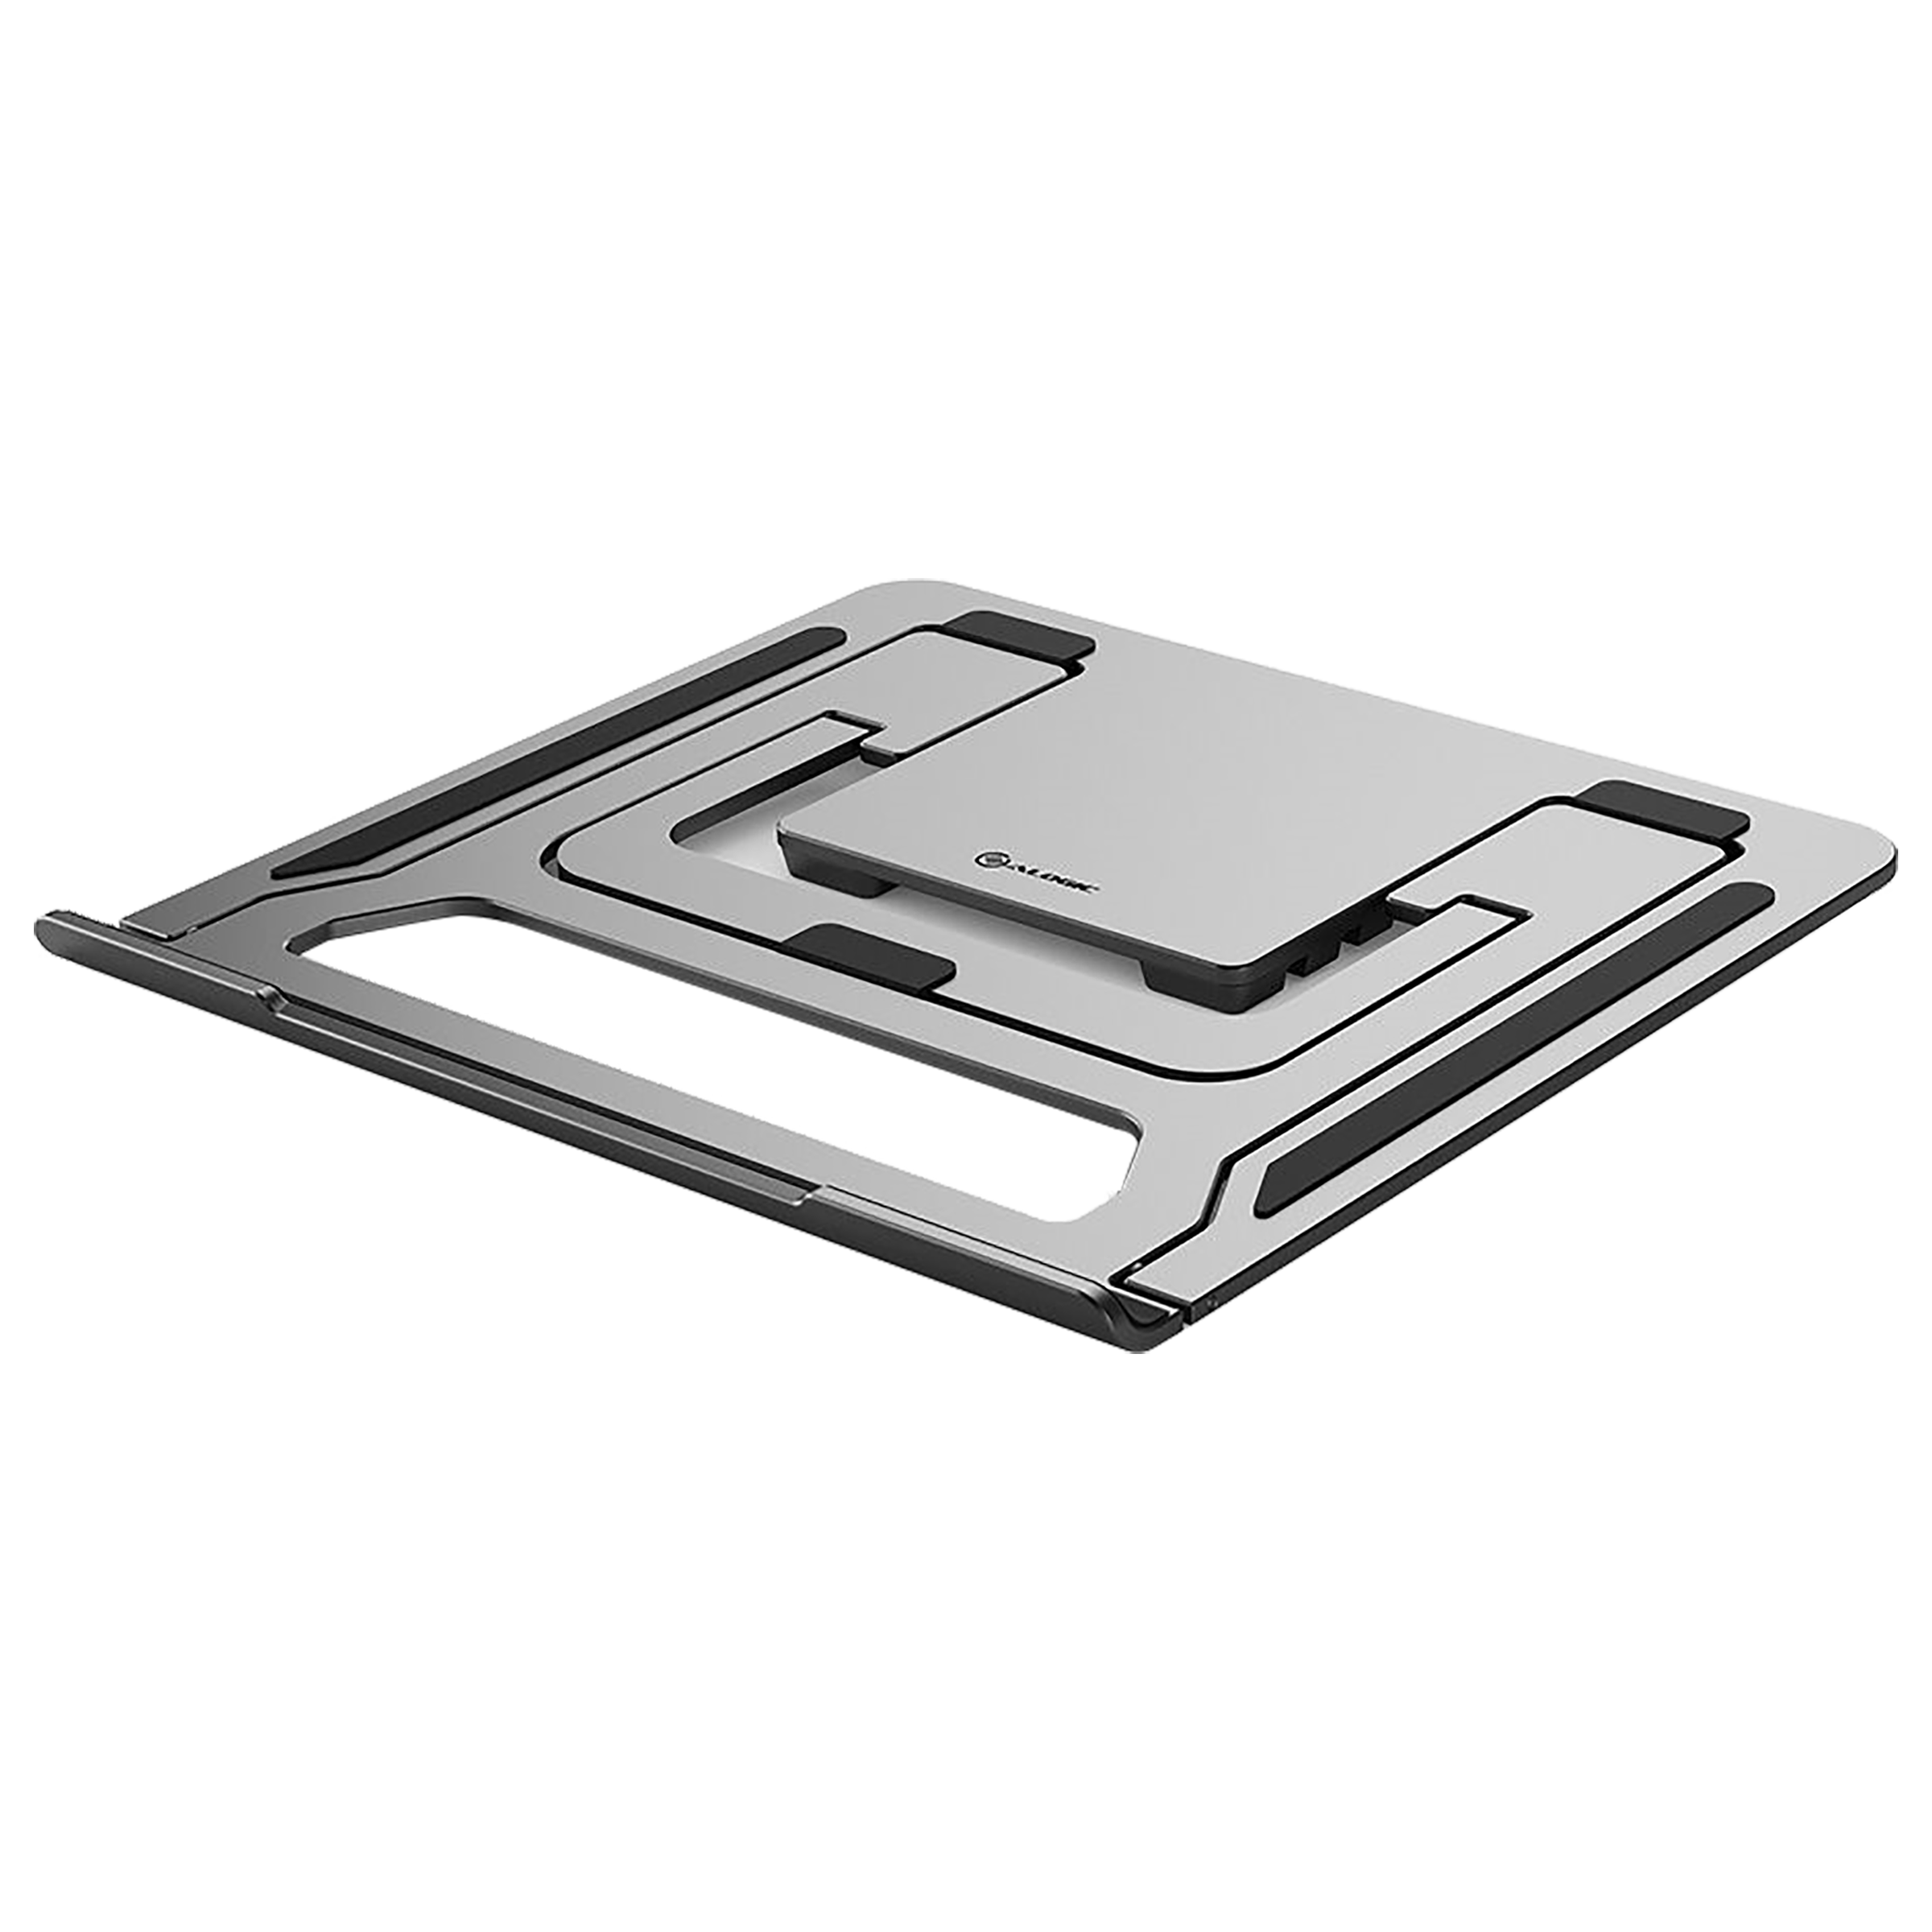 Alogic Metro Portable Laptop Stand (Universal Compatibility, AAL6APNS-SGR, Space Grey)_1